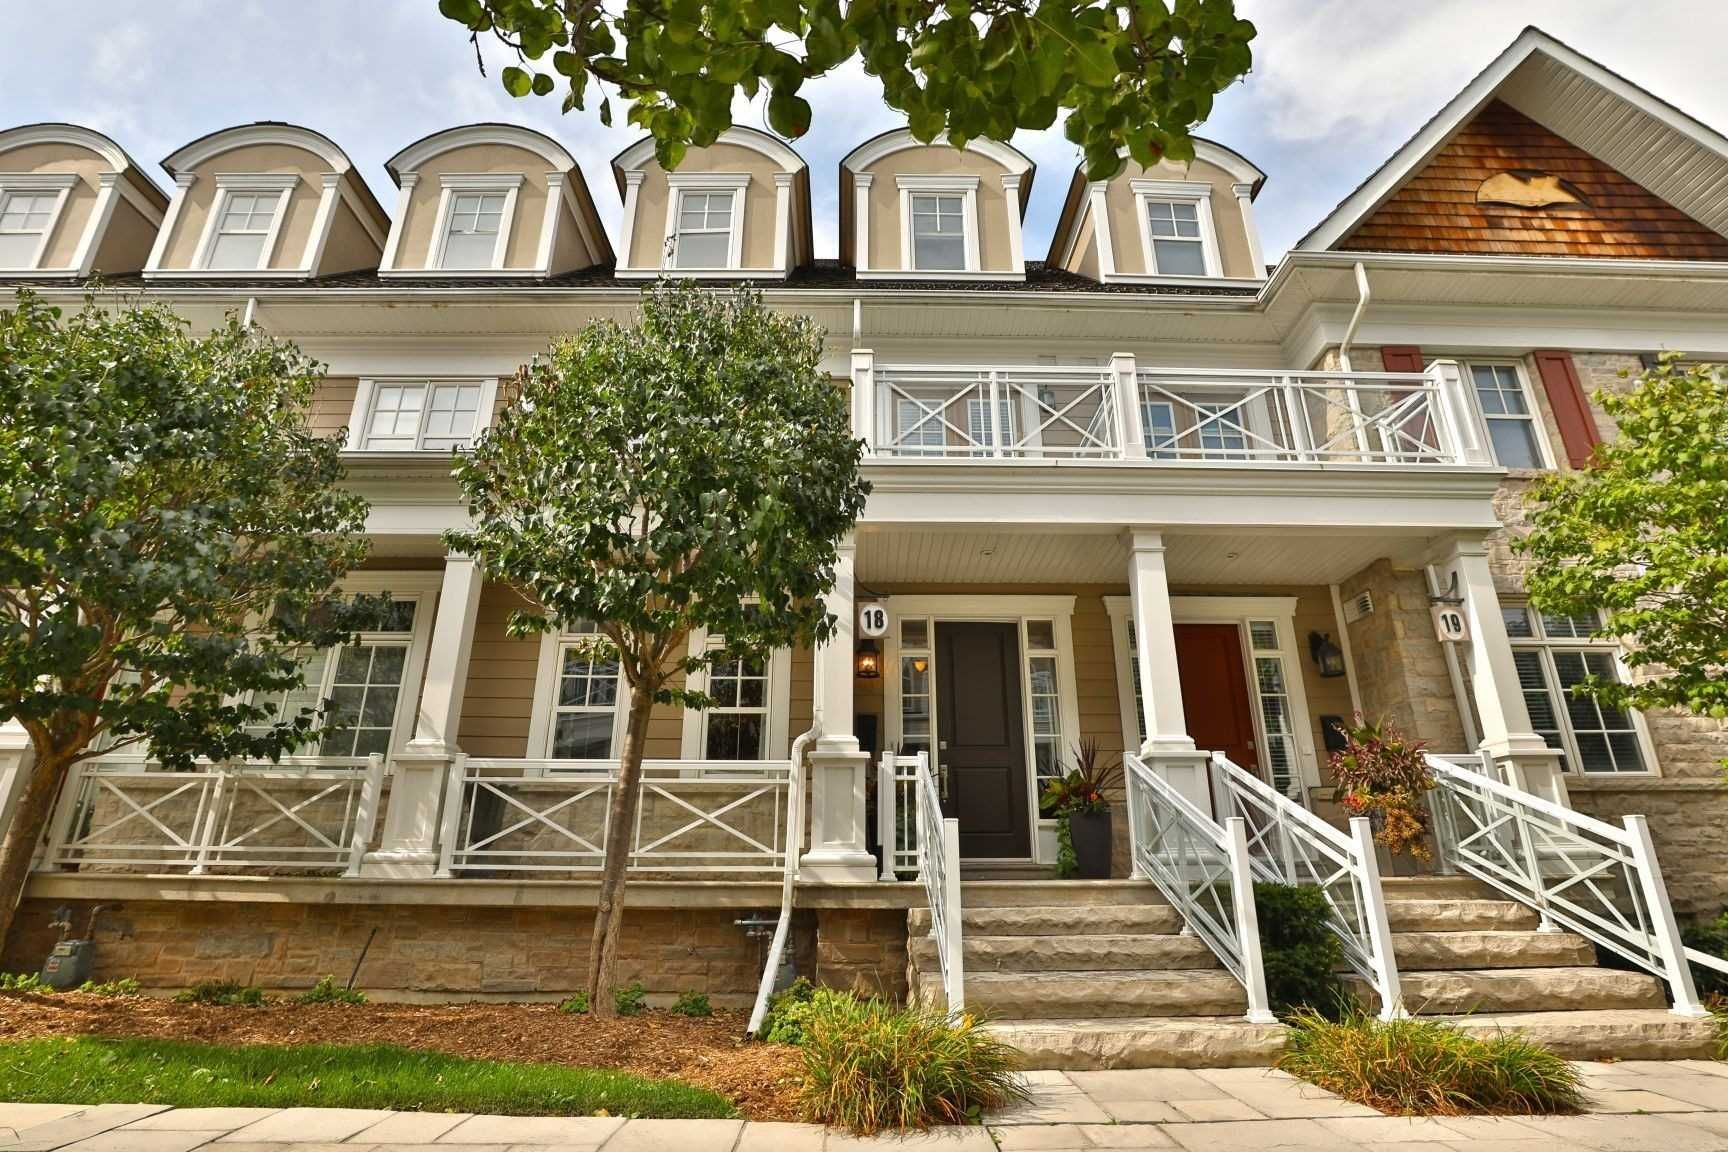 2369 Ontario St, unit 18 for sale in Bronte - image #1